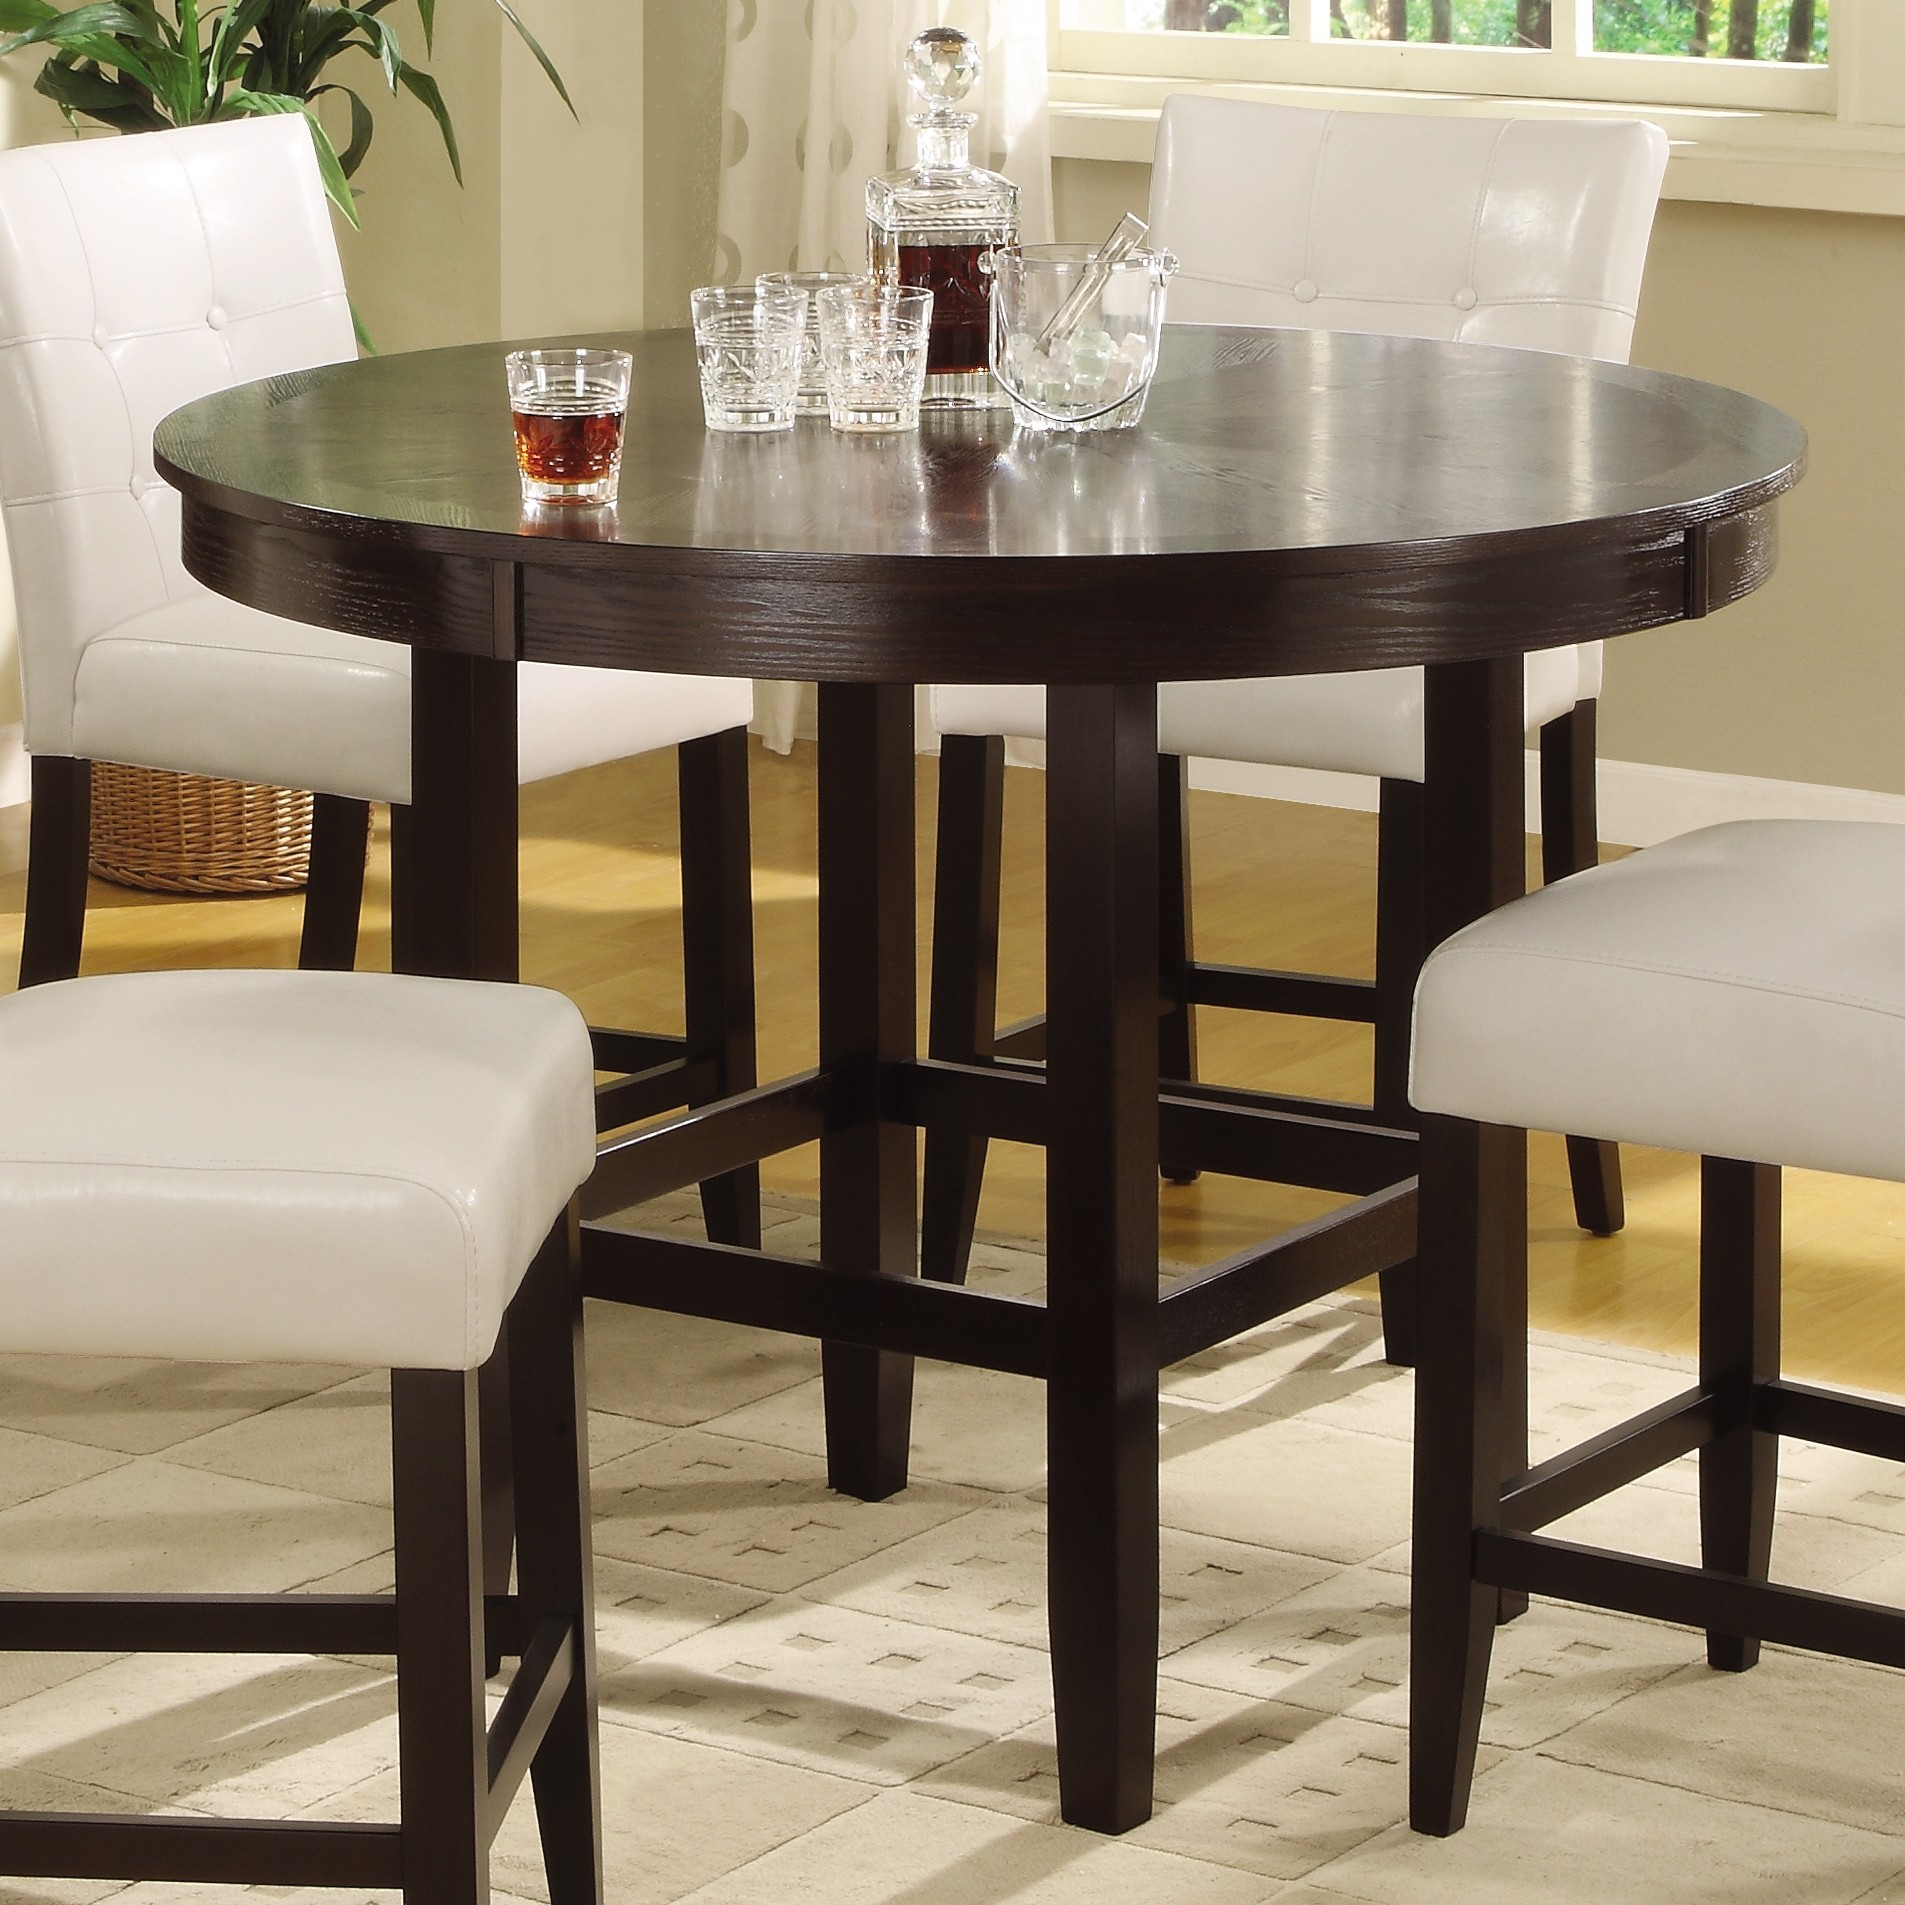 ... Kitchen Tables More Kitchen Tables And More Round Glass Dining Room  Table More Views Builtin Kitchen ...